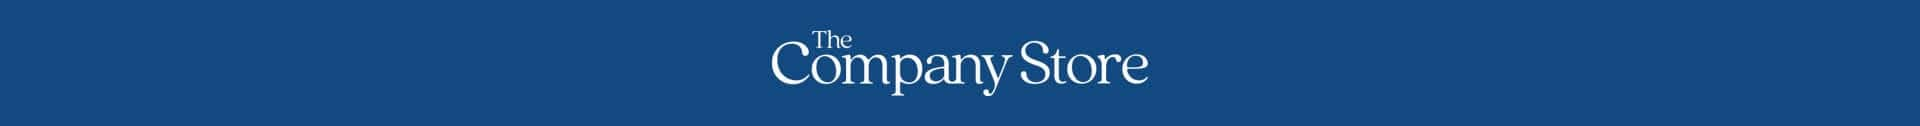 The Company Store Brand Banner